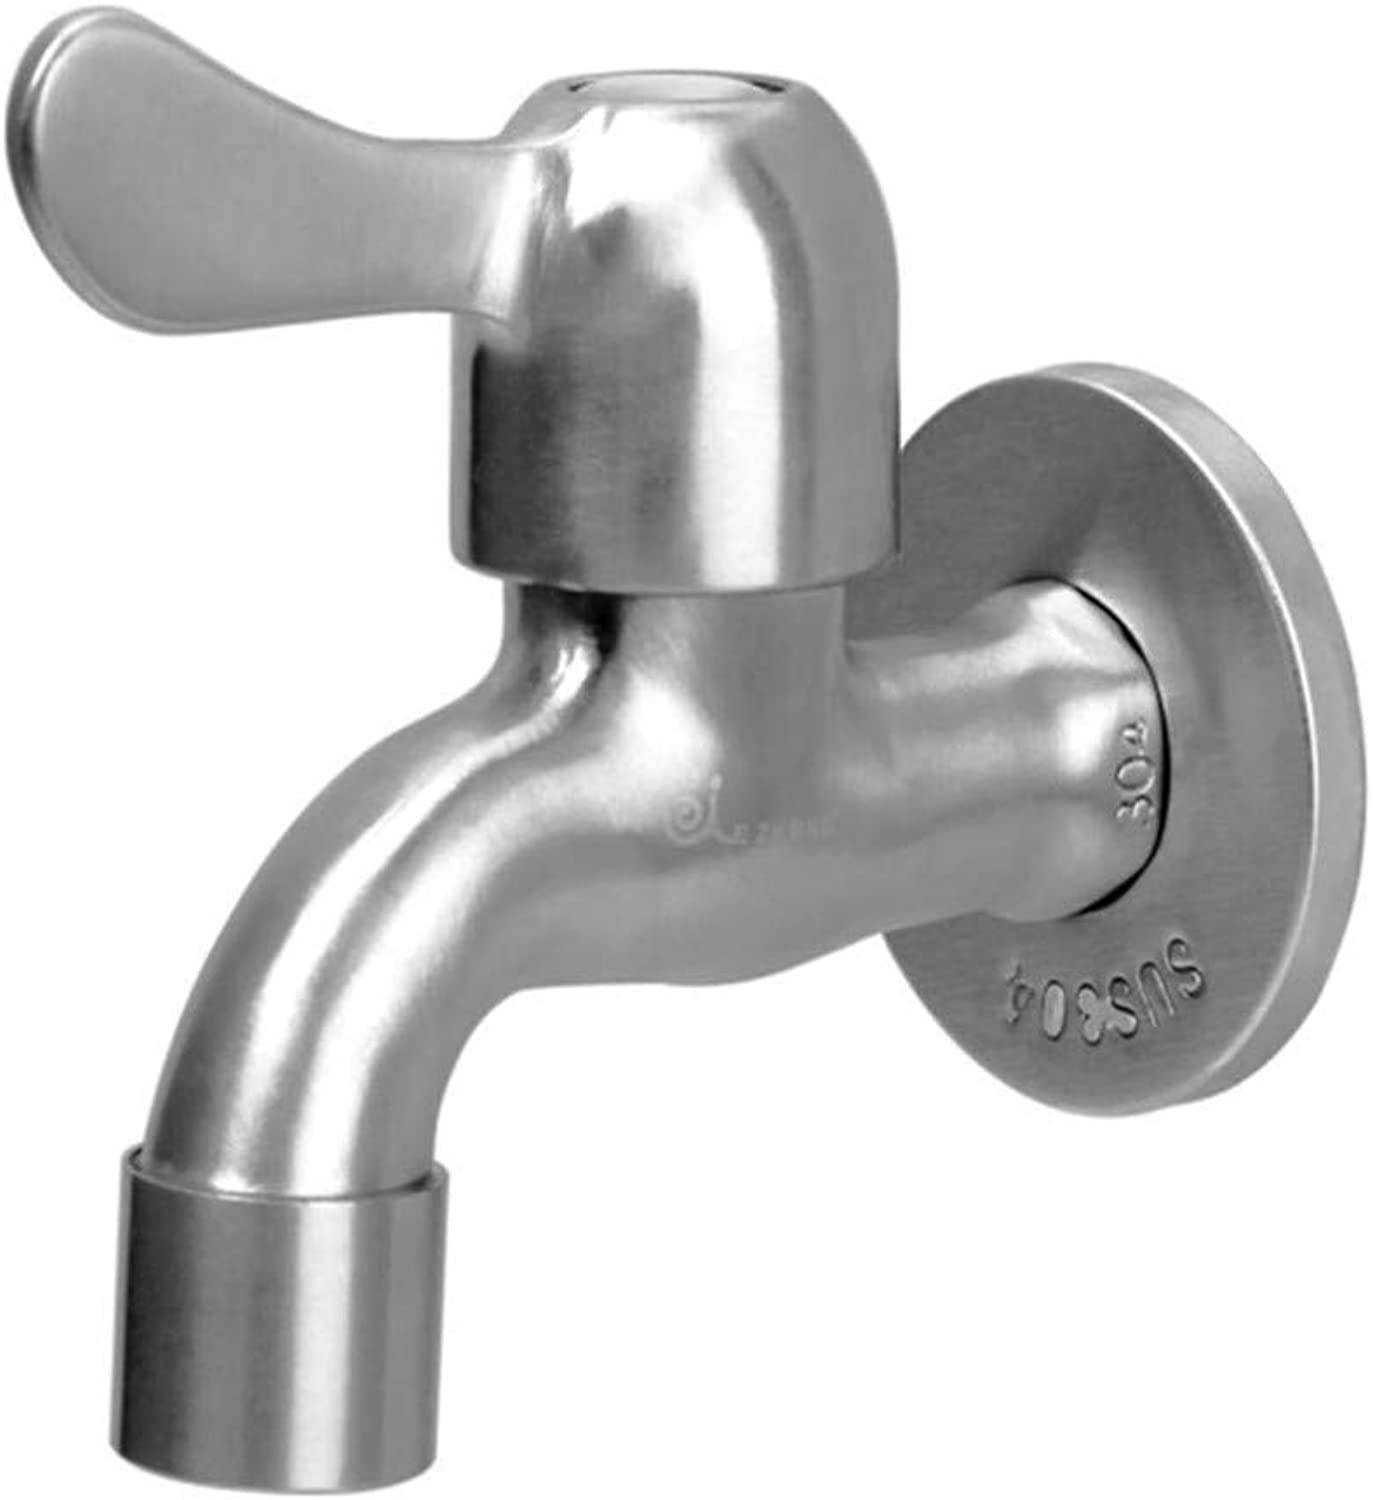 Water Tapdrinking Designer Archquick Opening of Washing Tank with Single Cooling Faucet